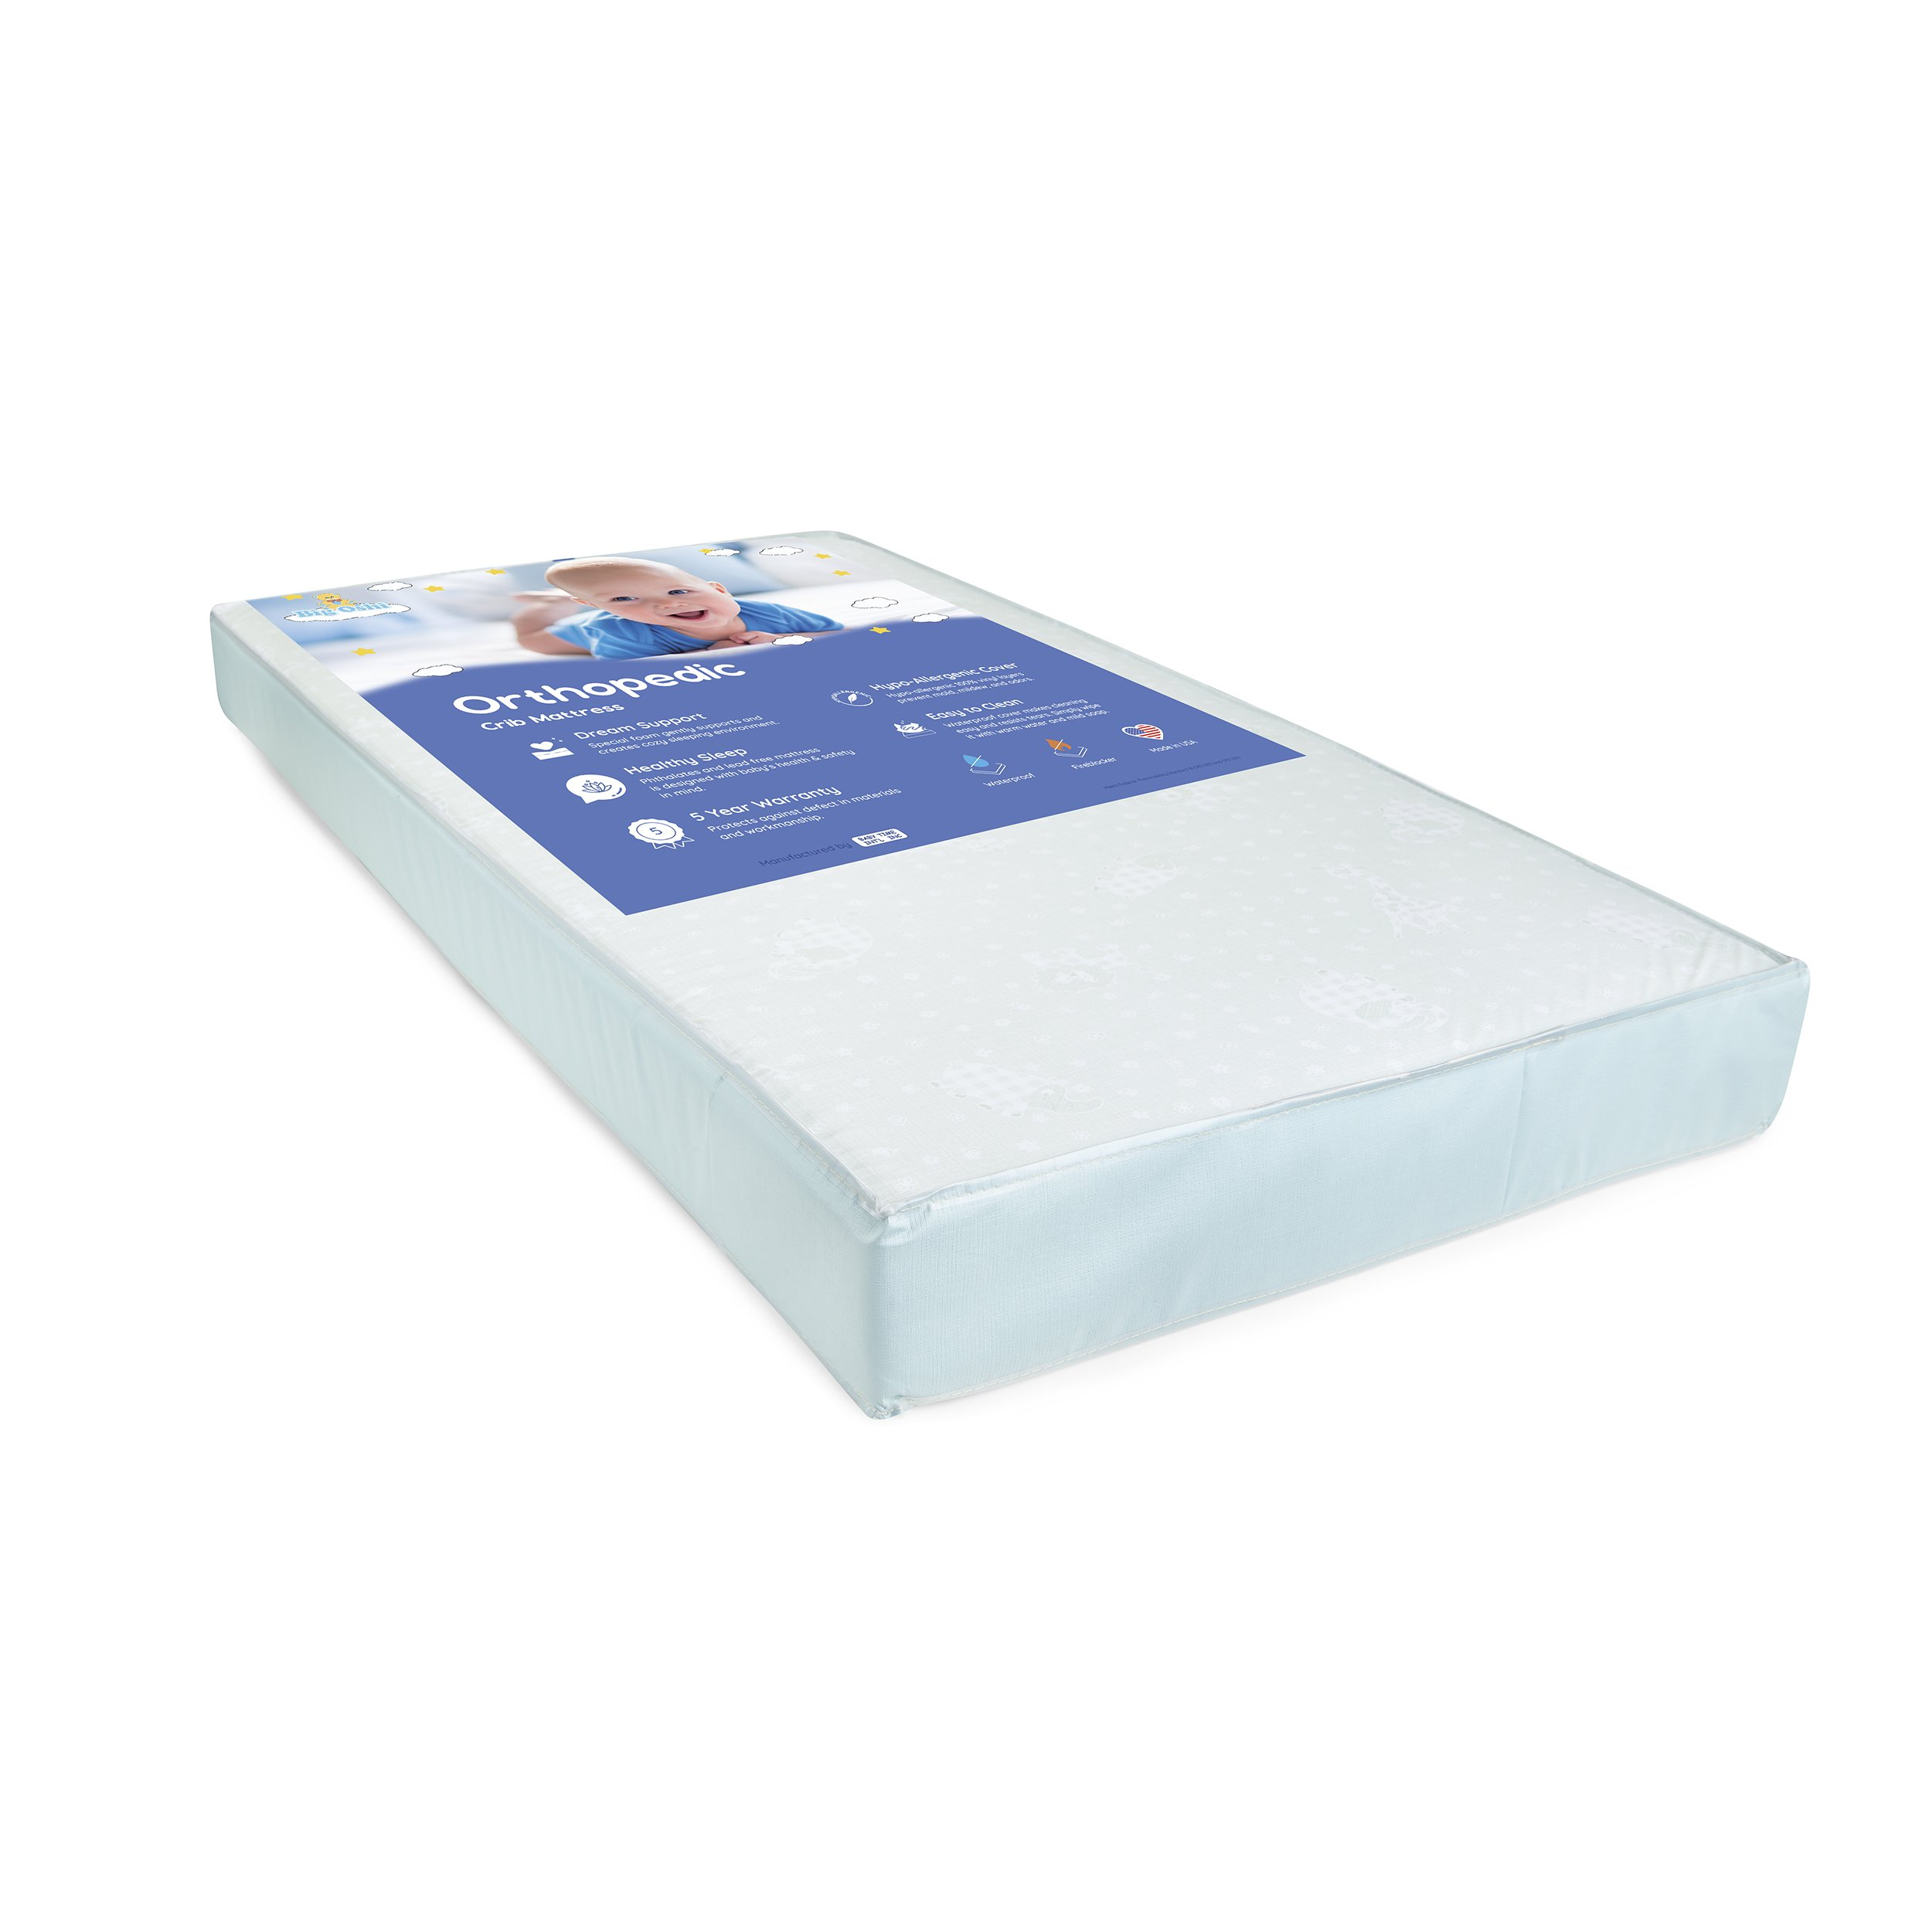 Big Oshi Foam Crib Mattress - Fits Full Size Baby Cribs and Toddler Beds - 5'' Thick - Includes Waterproof Cover for Easy Cleaning - Safe, Non-Toxic Material - for Boys and Girls - White, 52''x27.5'' by Big Oshi